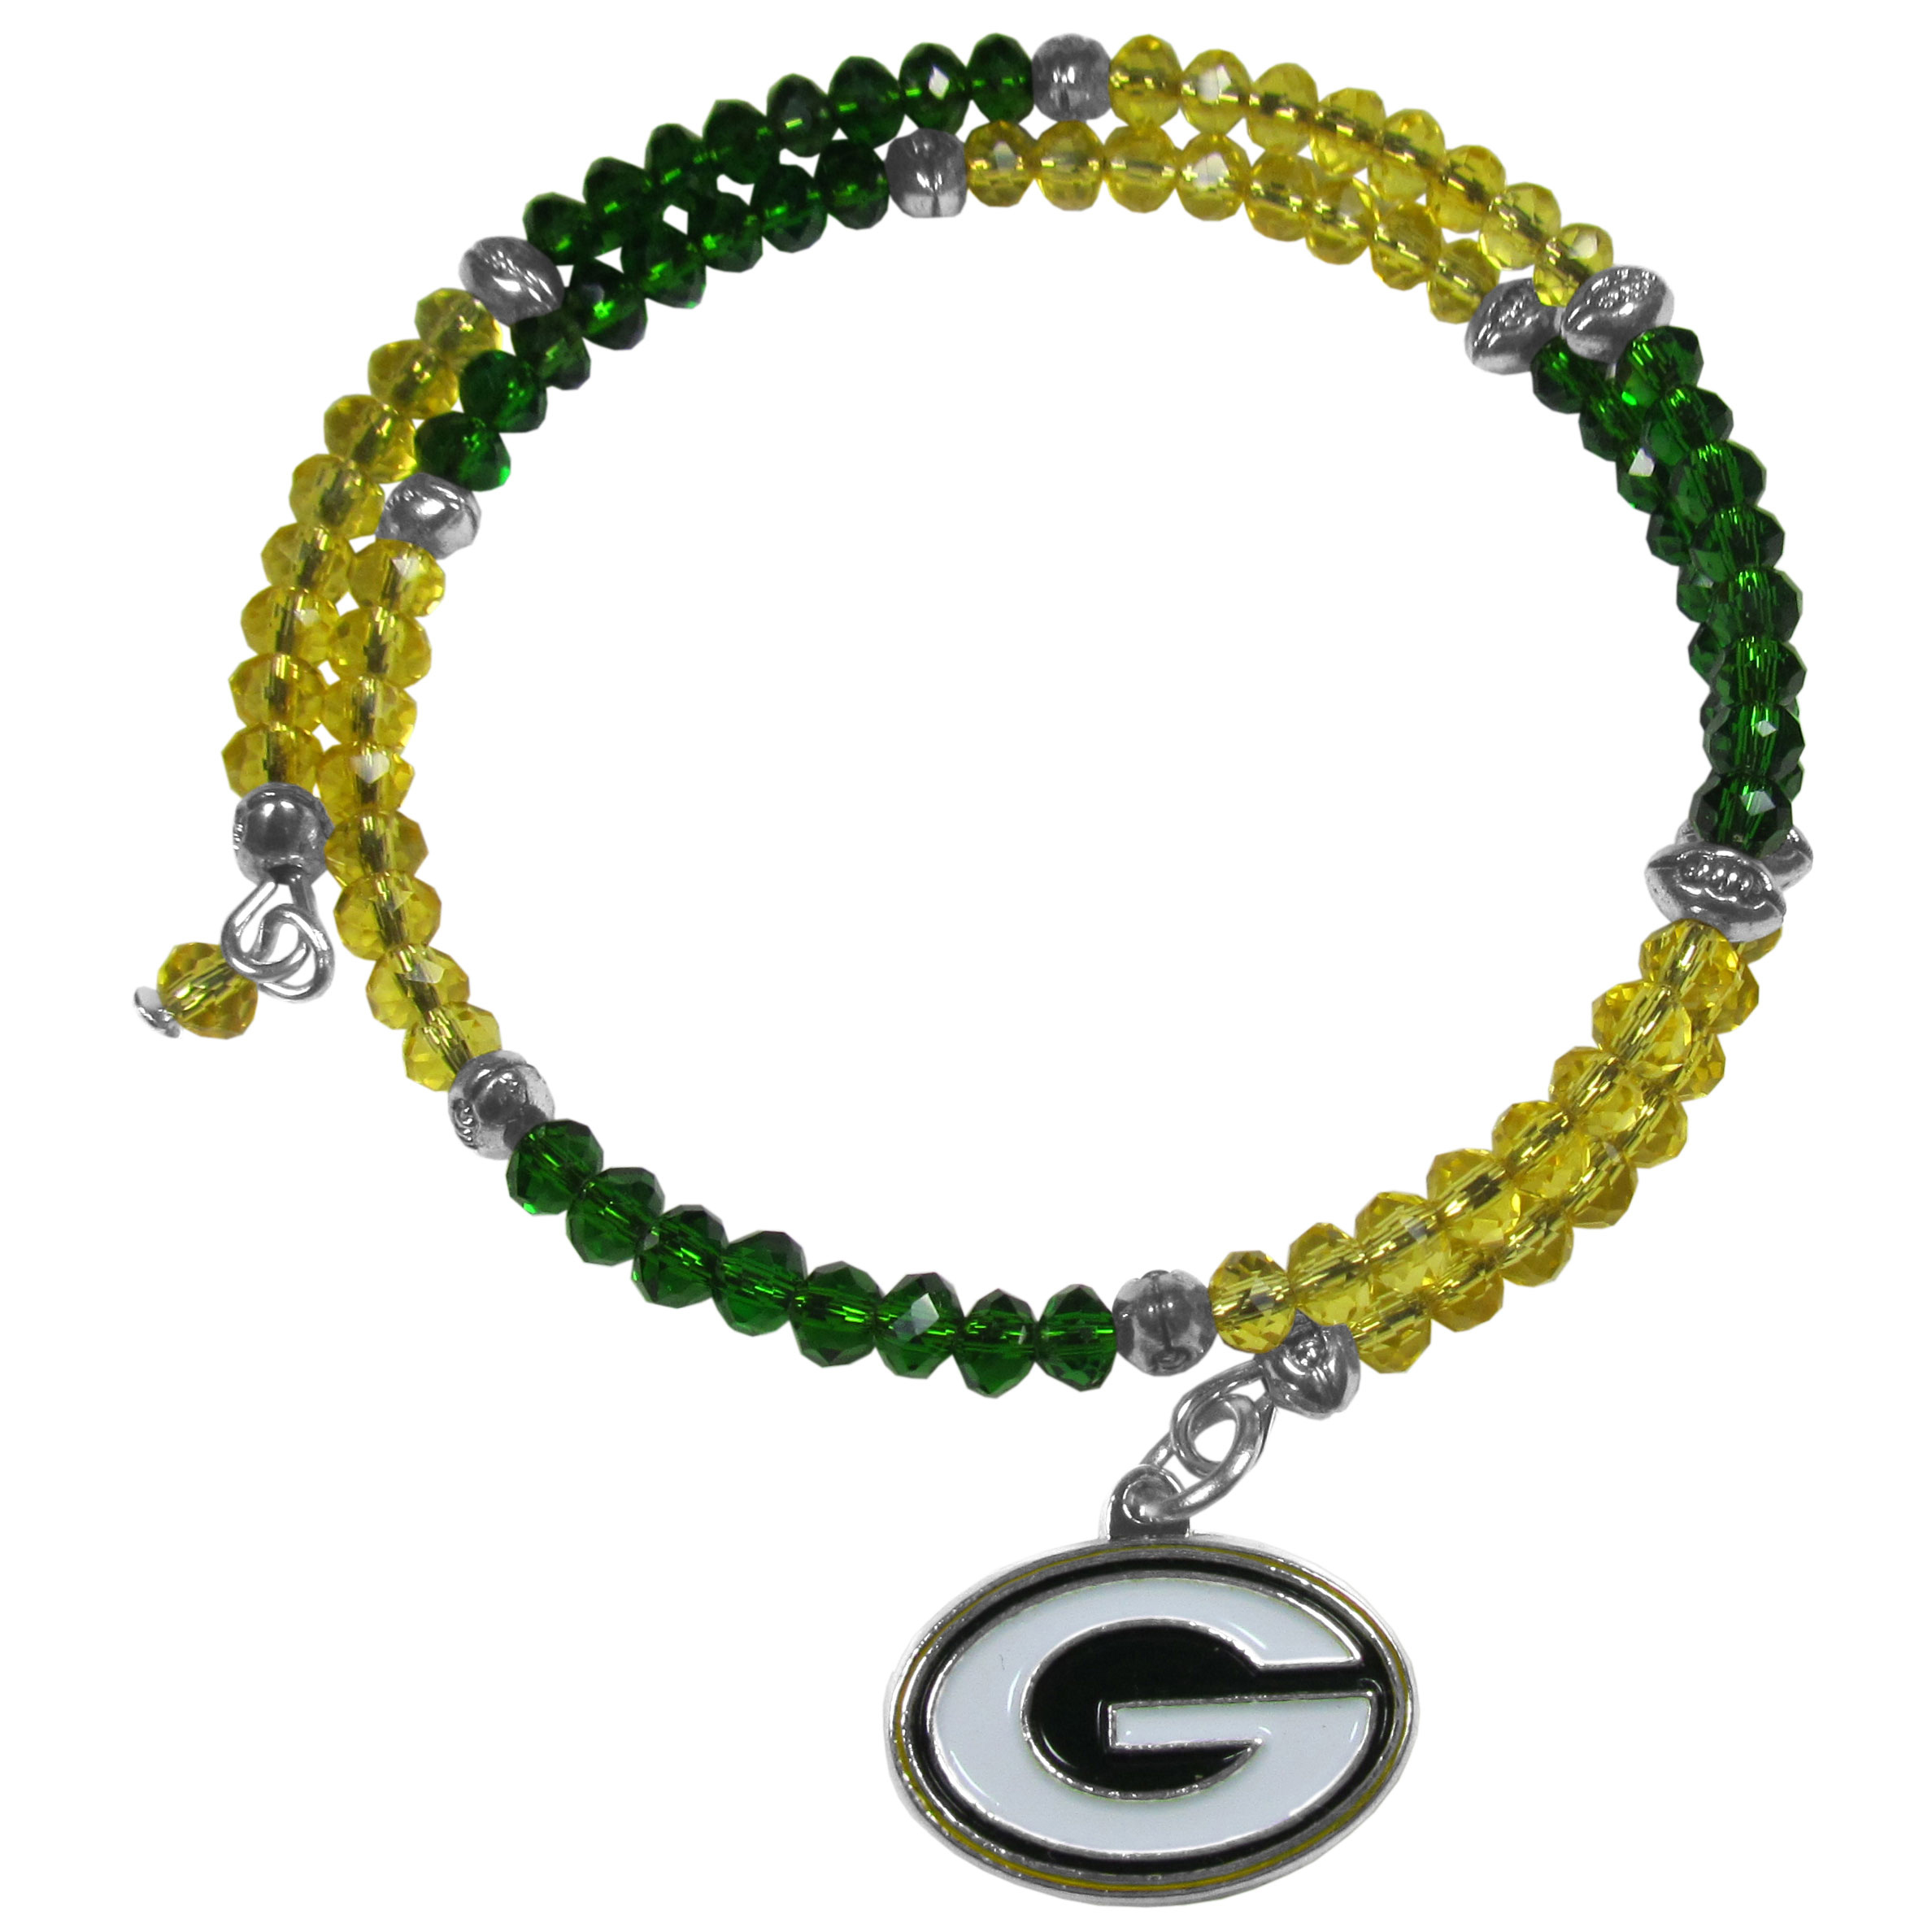 Green Bay Packers Crystal Memory Wire Bracelet - Our Green Bay Packers memory wire crystal bracelet is trendy way to show off your love of the game. The double wrap bracelet is completely covered in 4 mm crystals that are broken up with adorable football beads creating a designer look with a sporty twist. The bracelet features a fully cast, metal team charm that has expertly enameled team colors. This fashion jewelry piece is a must-have for the die-hard fan that chic look that can dress up any outfit.